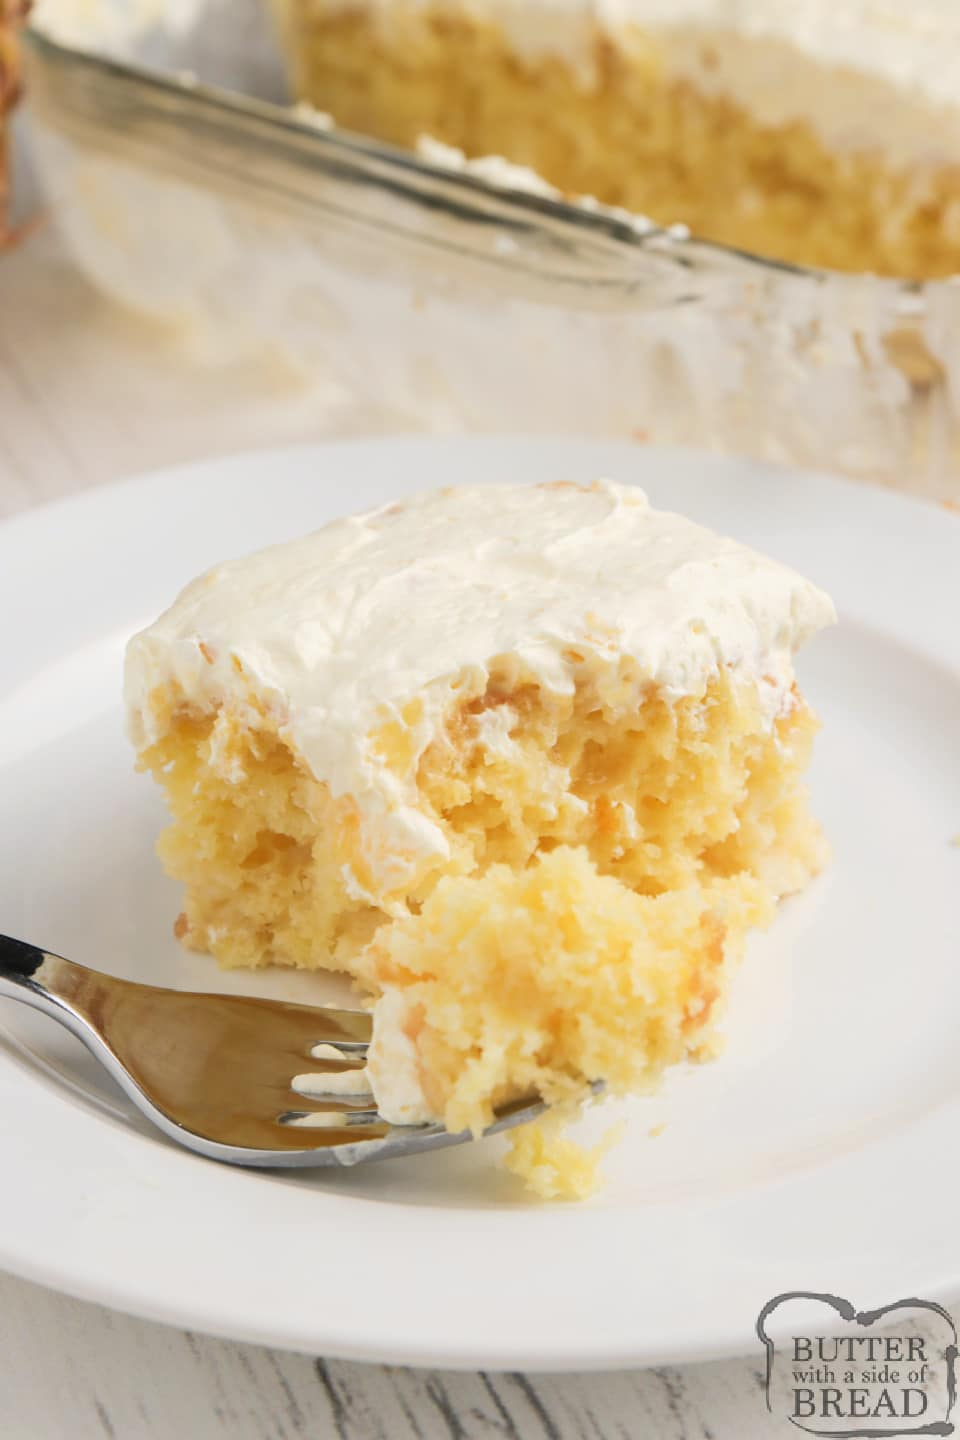 Pina Colada Poke Cake made with a cake mix, crushed pineapple and a delicious, creamy pina colada sauce. Easy poke cake recipe topped with a light, refreshing pineapple pudding topping.